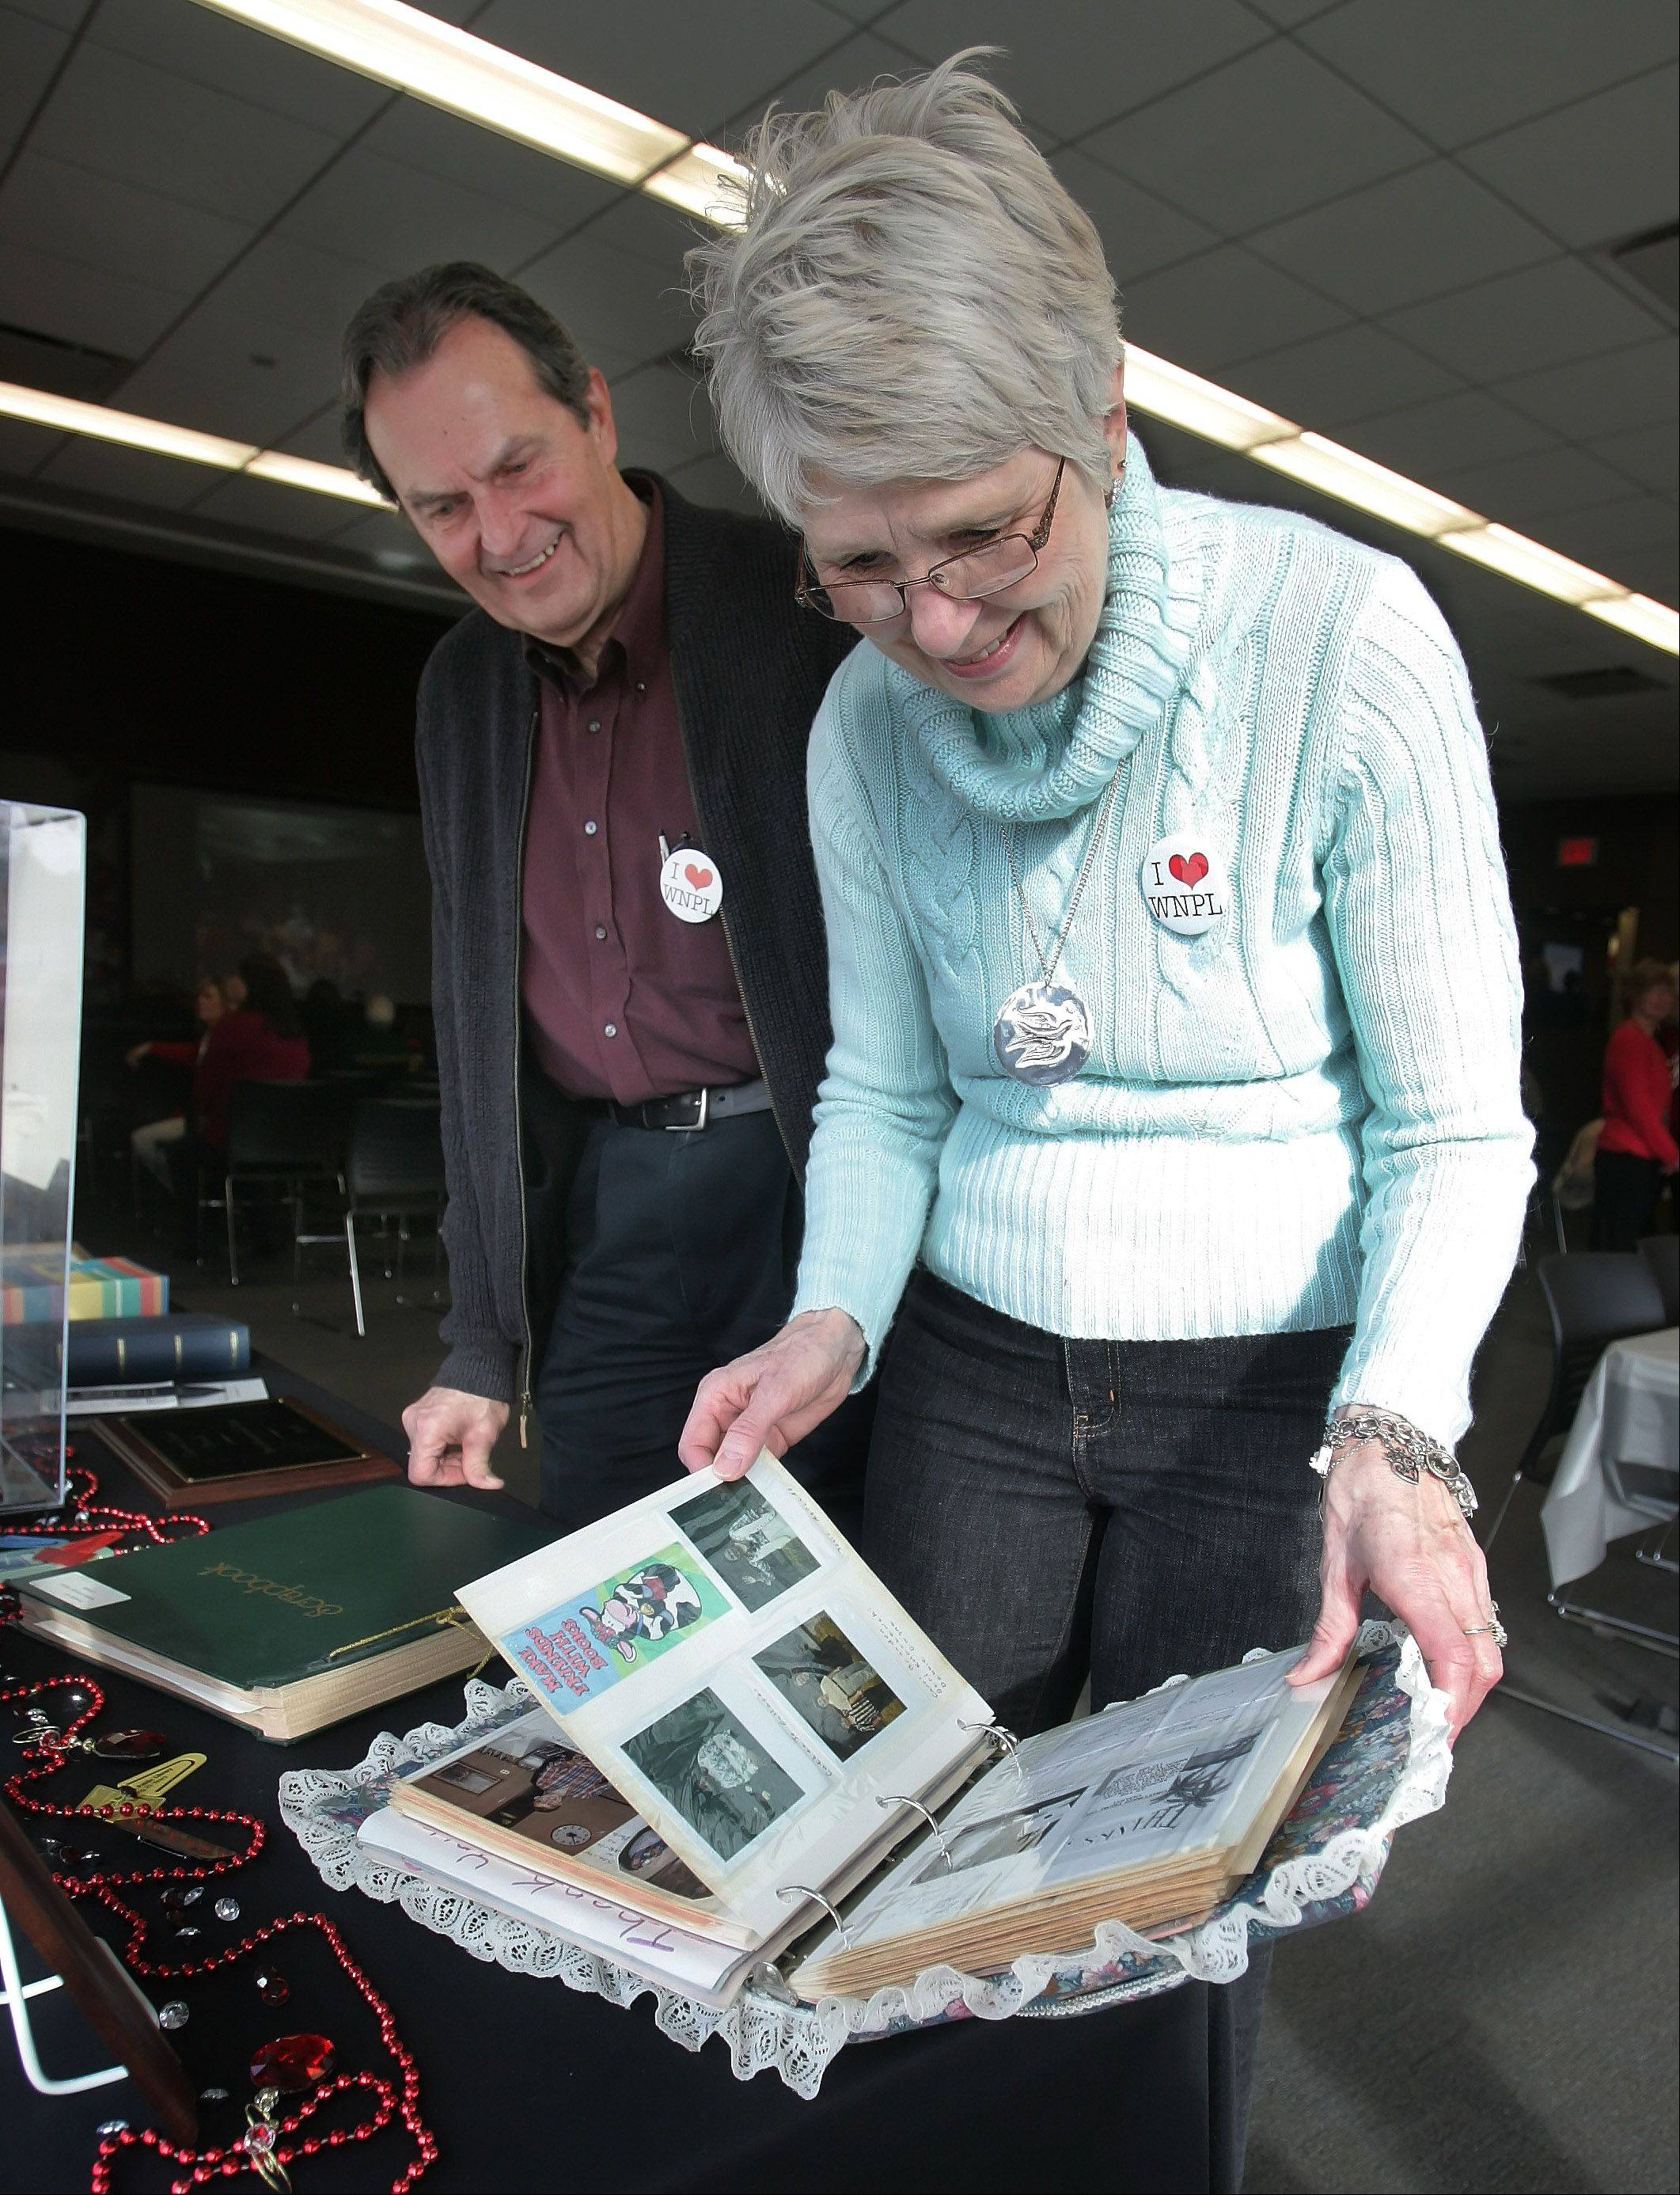 Trish and Ron Wendt, of Gurnee, look through scrapbooks on the history of the Warren-Newport Public Library library during the 40th anniversary celebration Sunday in Gurnee. The special event featured food, games and actives focused on the anniversary.